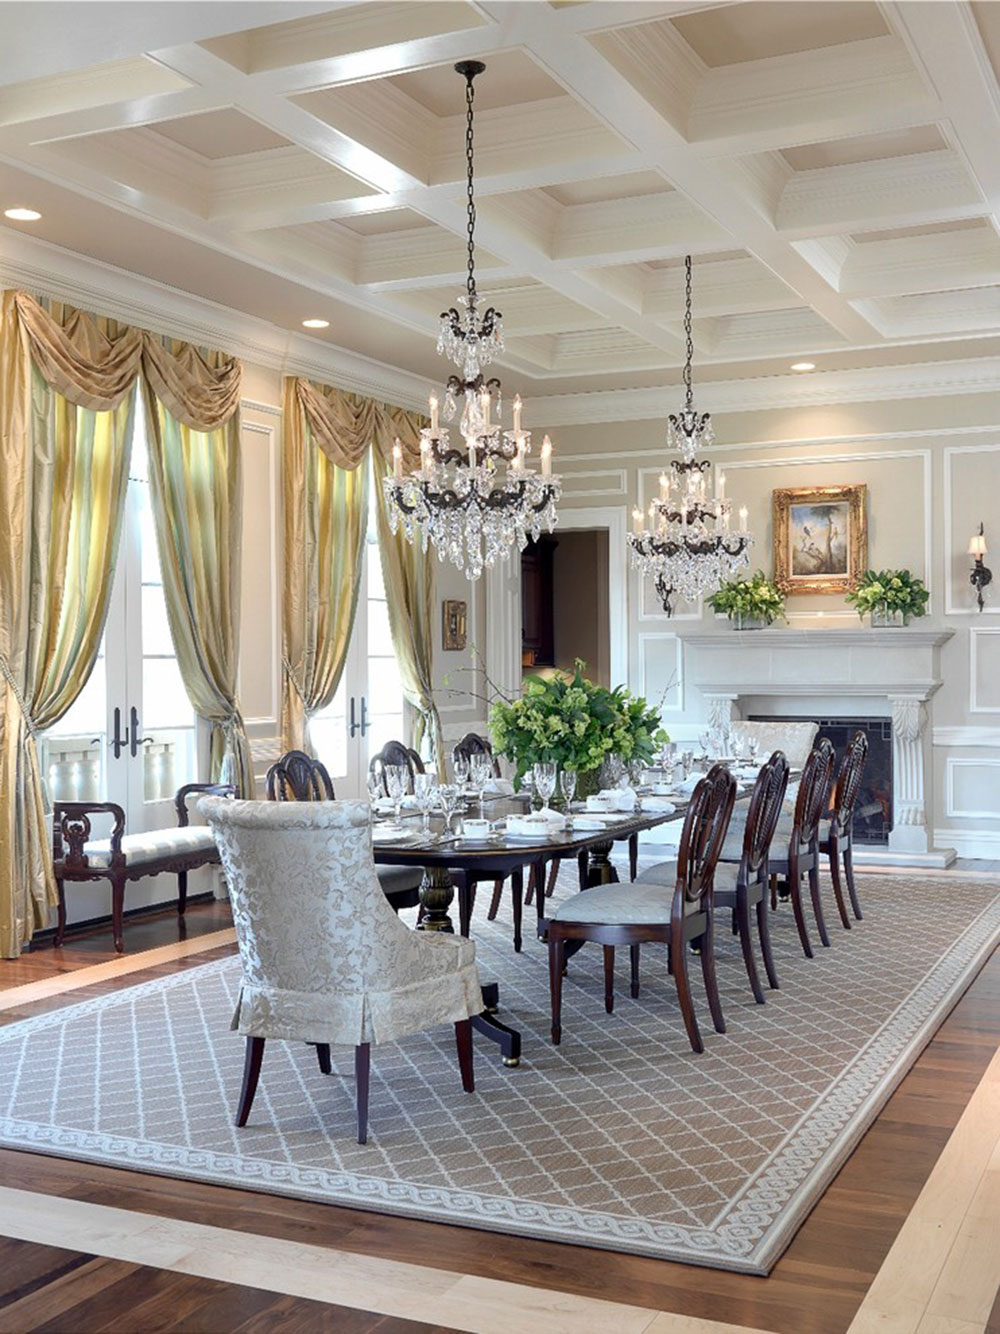 Elegant Decorating Ideas breathtaking pictures with elegant decorating ideas